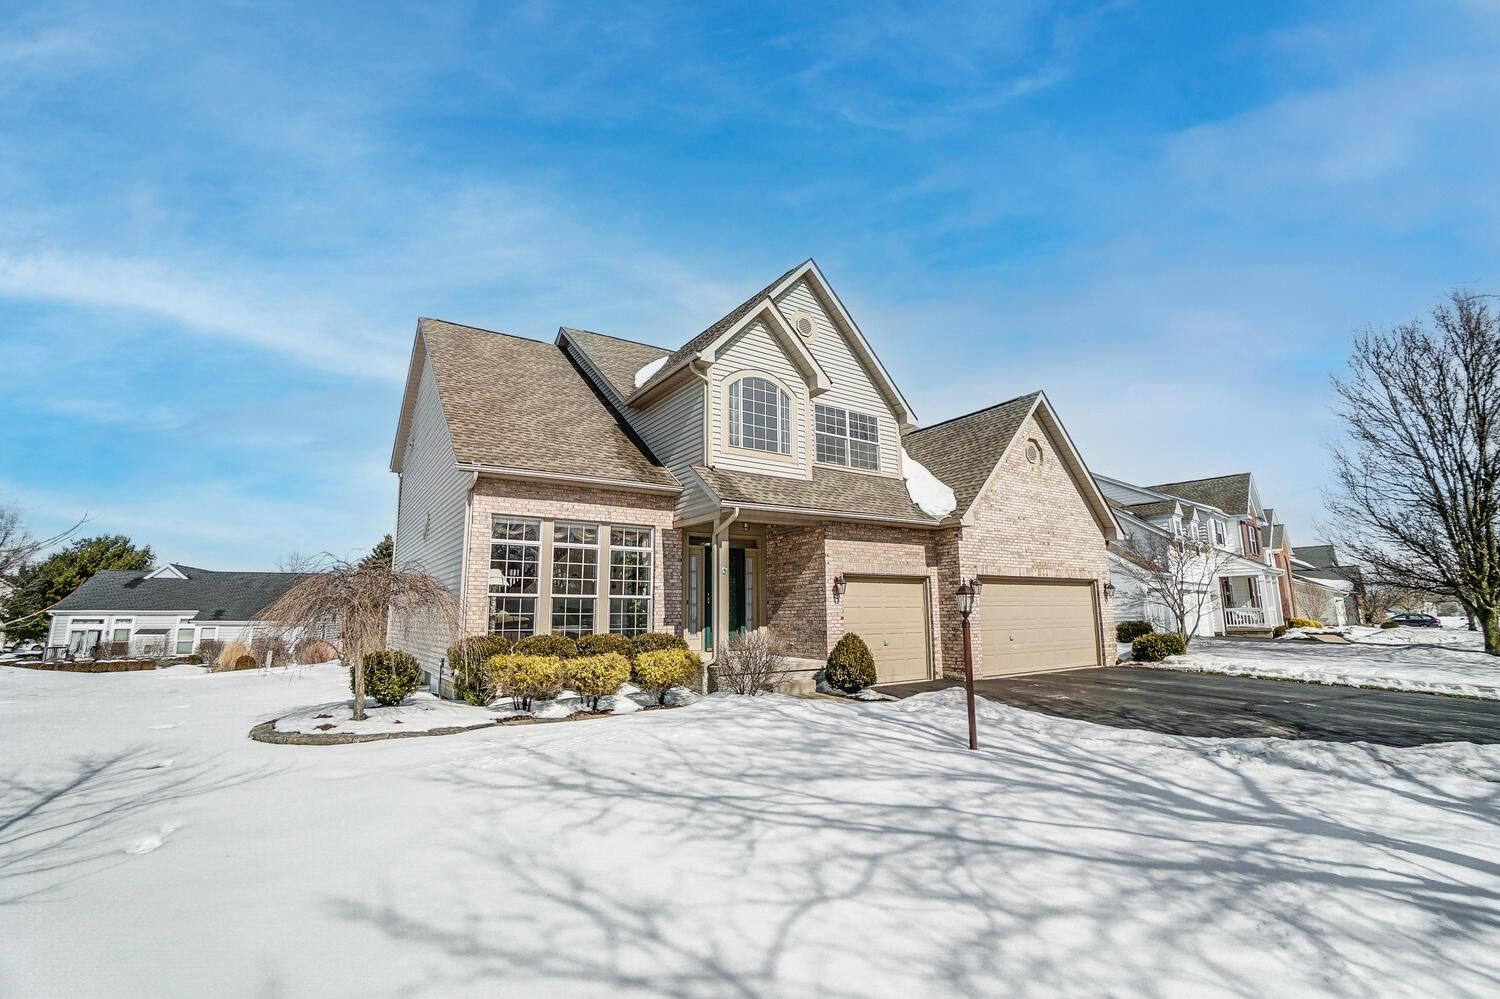 Photo of 3476 Manchester Drive, Powell, OH 43065 (MLS # 221005139)